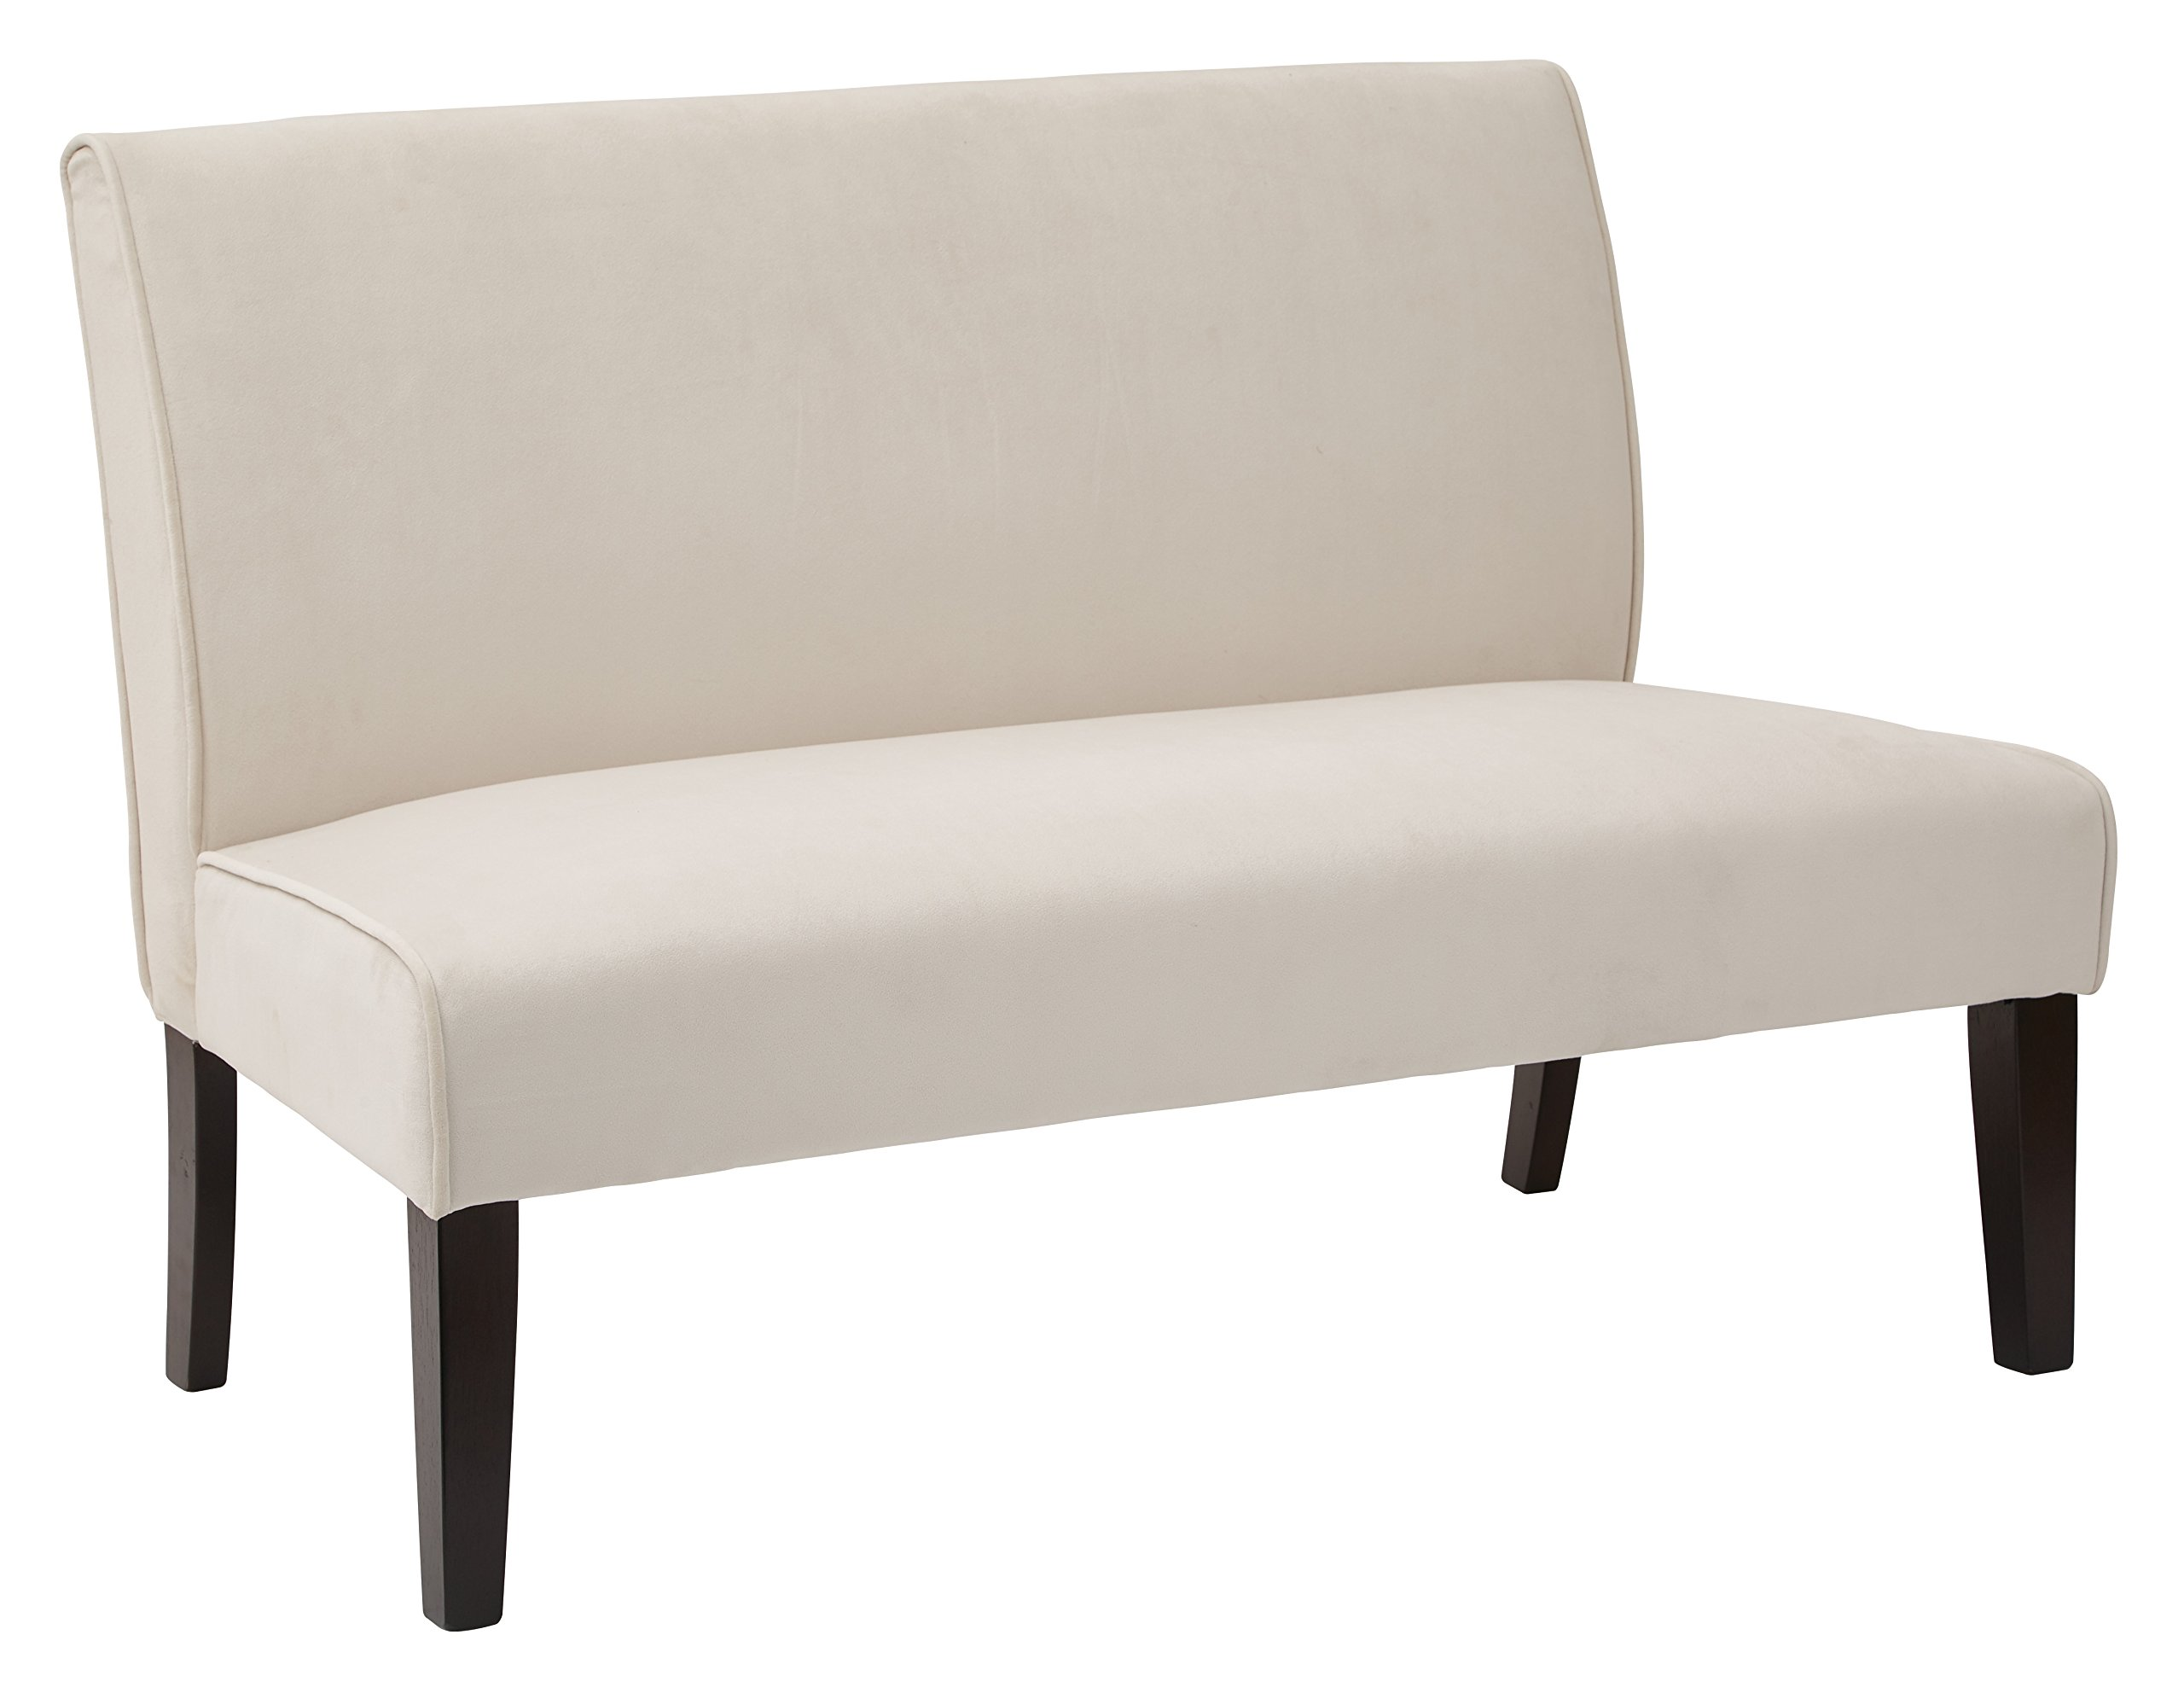 AVE SIX Laguna Loveseat with Espresso Finish Solid Wood Legs, Oyster Velvet Fabric